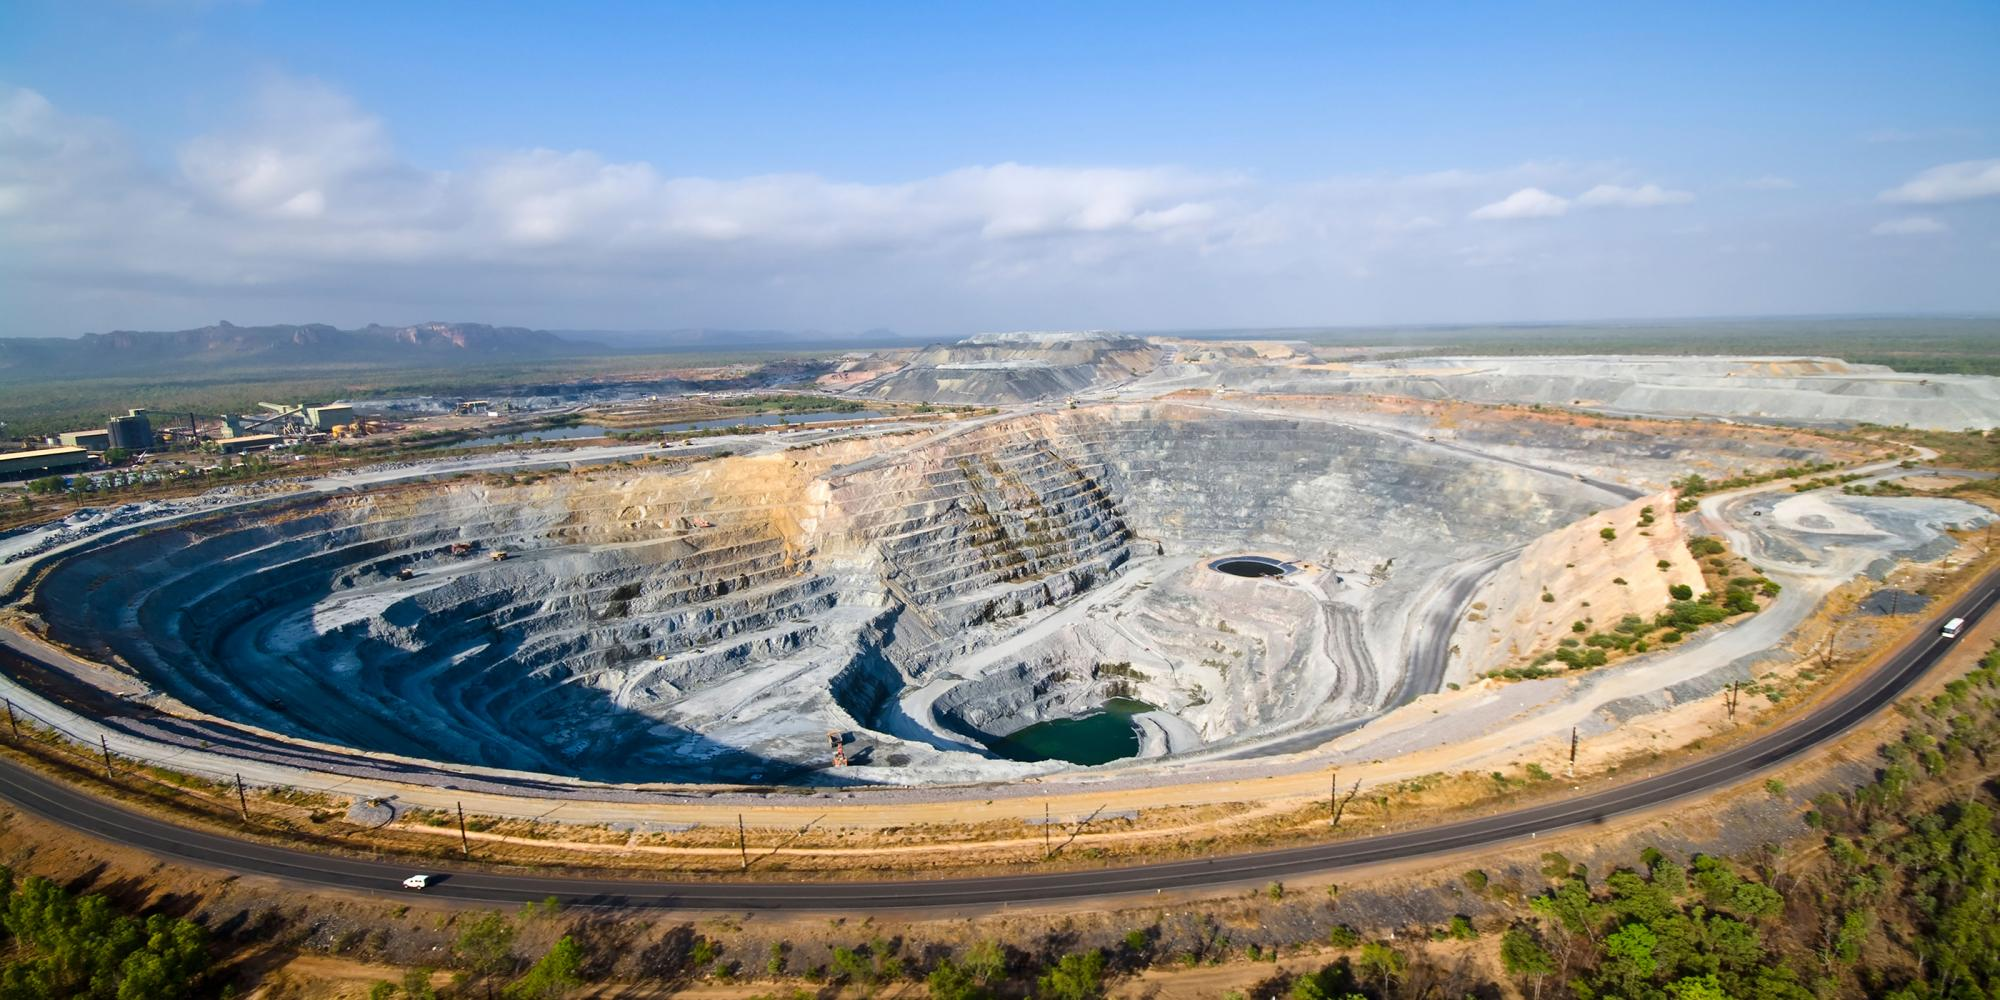 A large grey strip mine, with a stepped decline to the bottom, disrupts a green plains landscape.